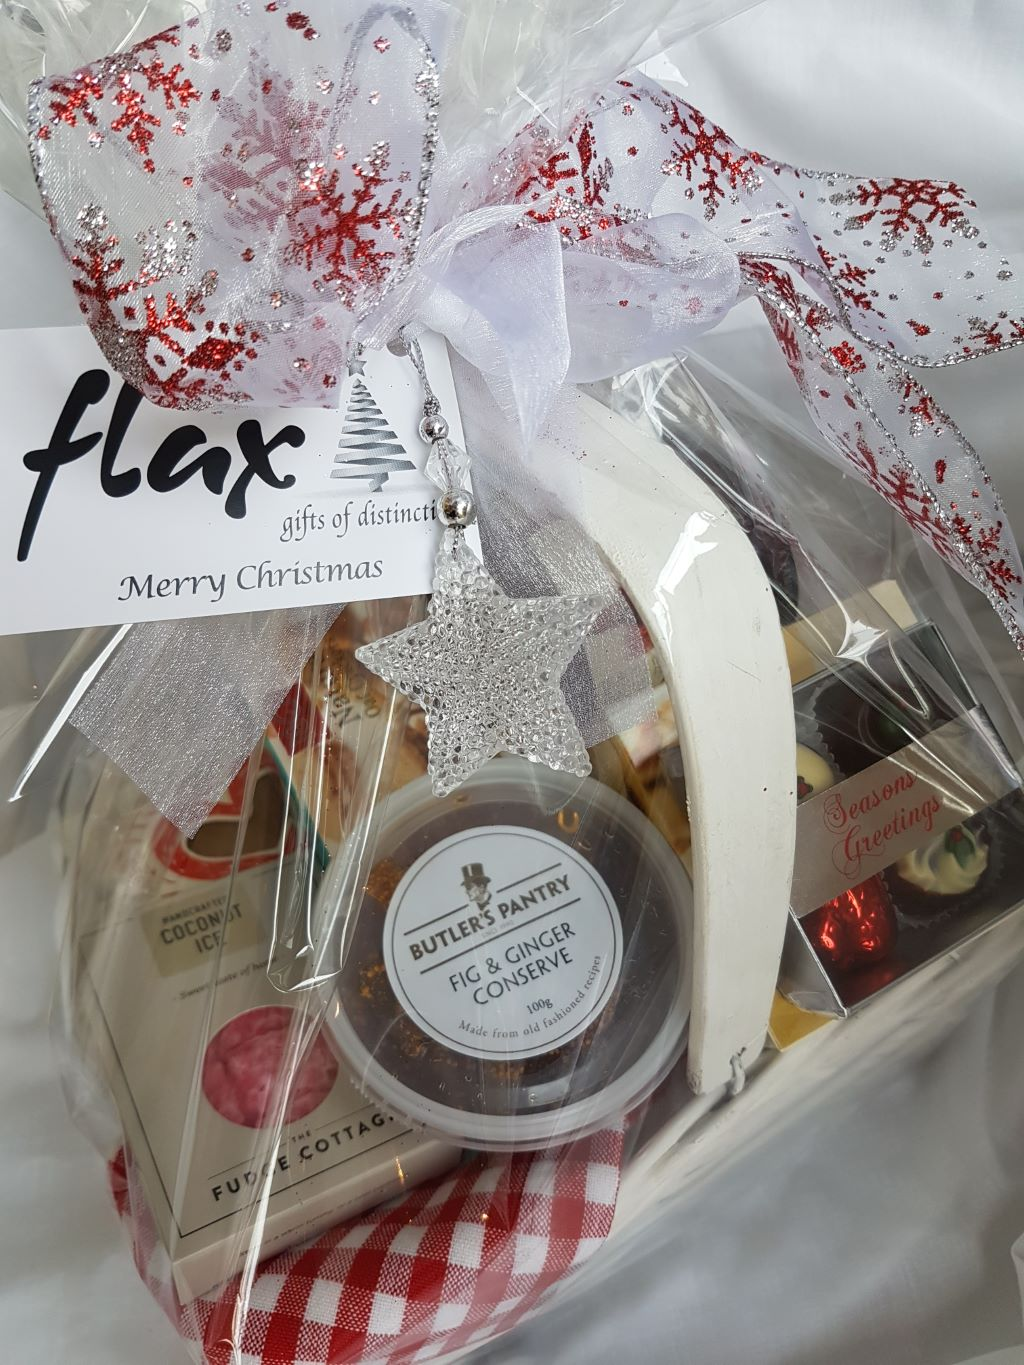 Flax gifts of distinction marshland christchurch gluten free options available negle Image collections